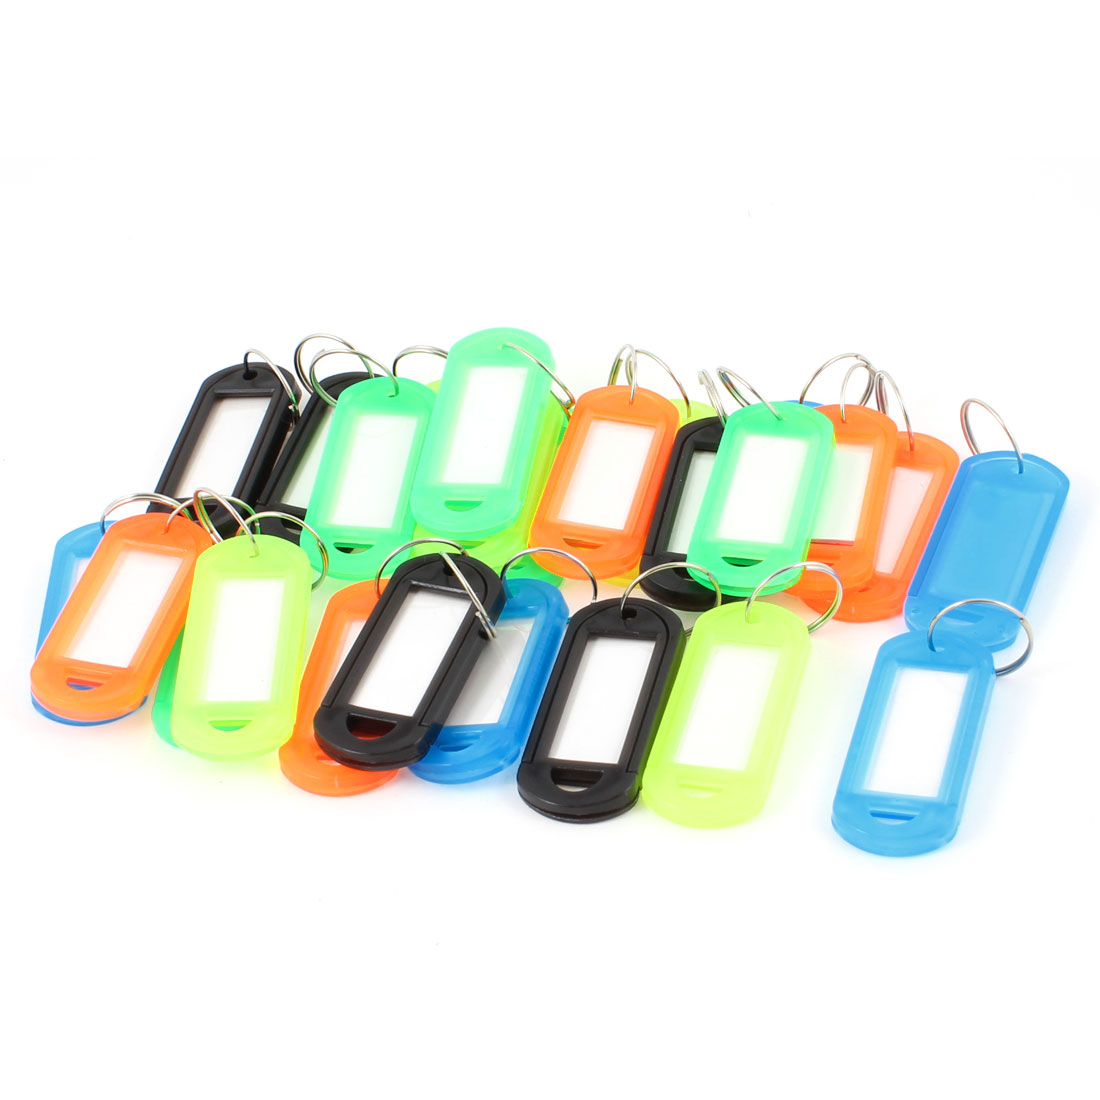 Assorted Color Plastic Name Tag Badge Clip Holder Keyring 25 Pcs